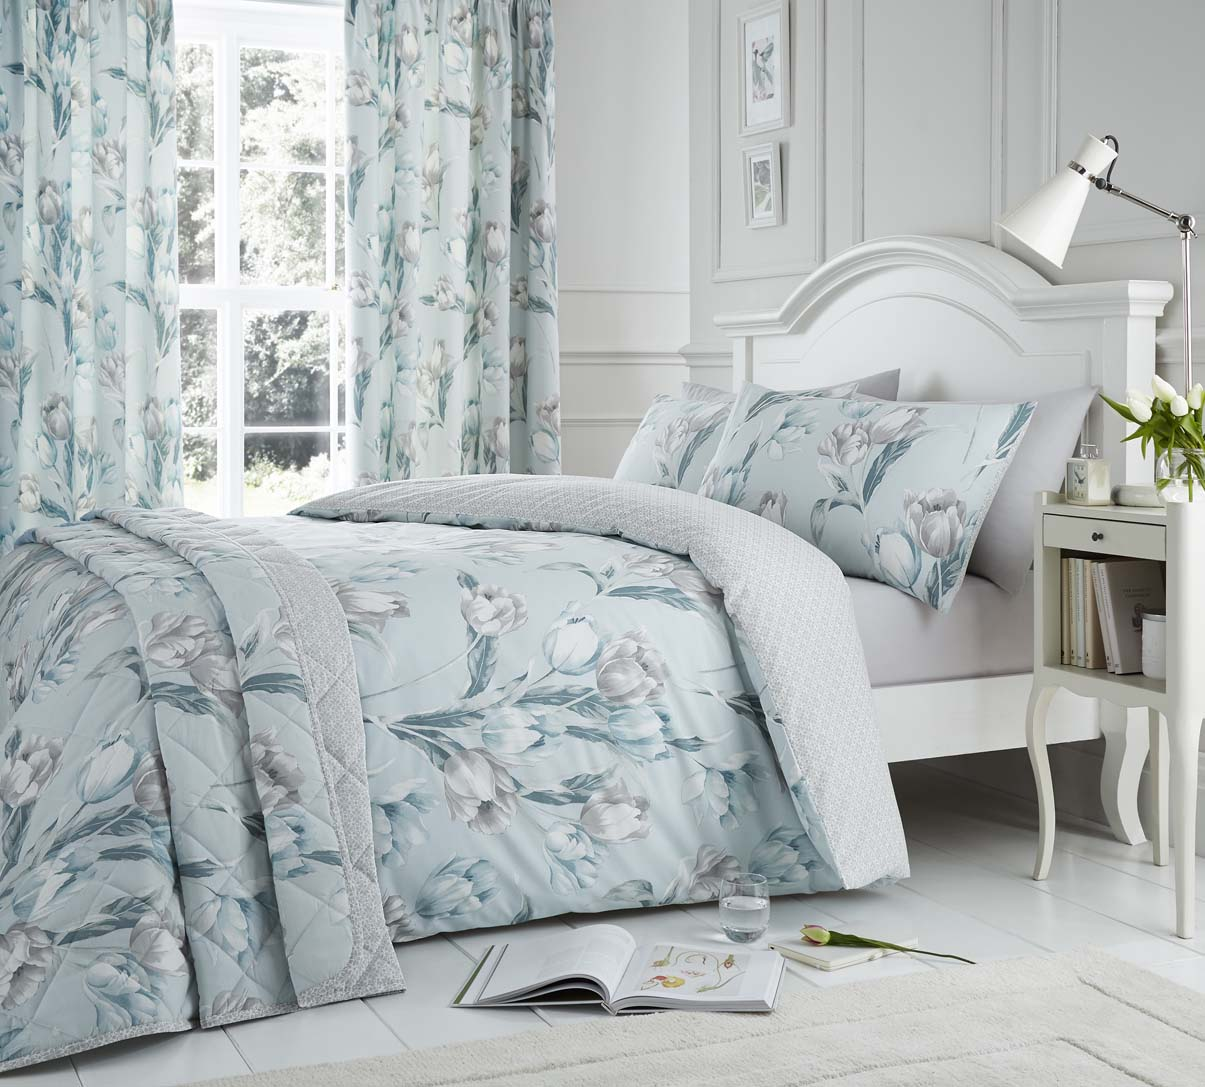 Dreams N Drapes Tulip Duvet Cover Set and Accessories